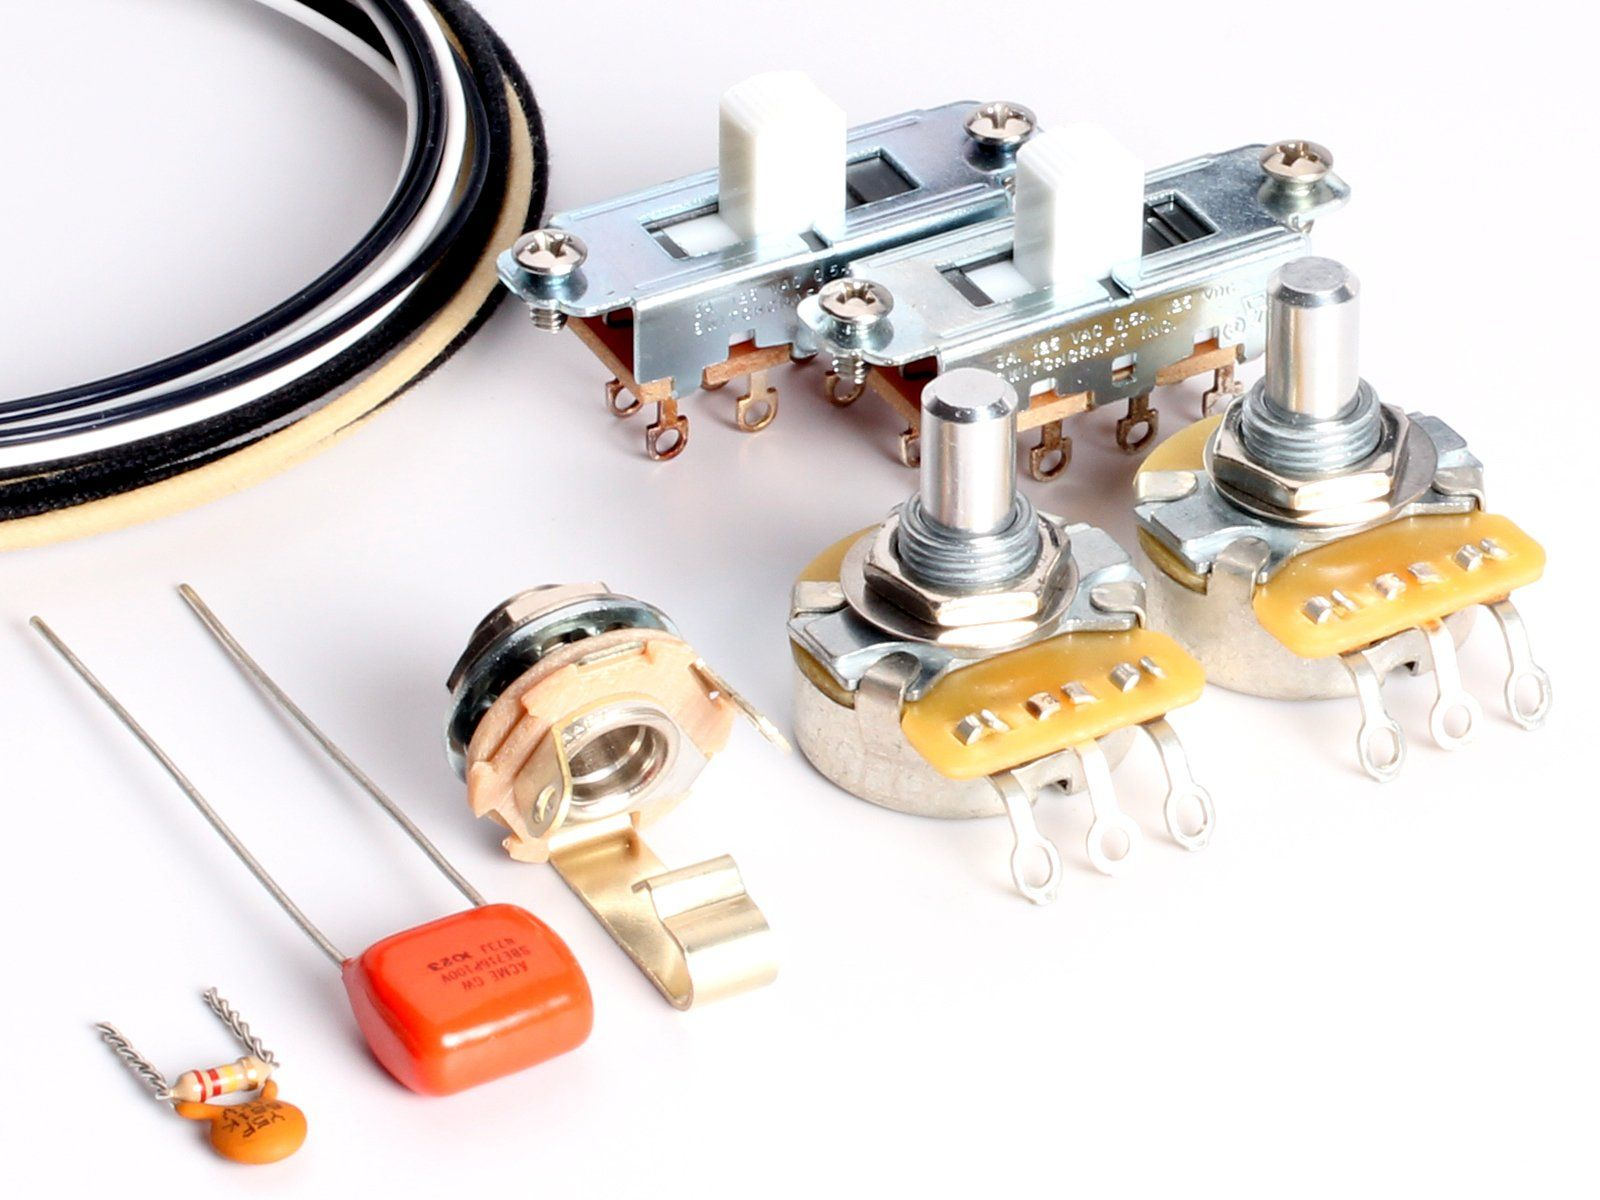 Toneshaper Guitar Wiring Kit For Fender Mustang White Switches Kits Read More At The Image Link